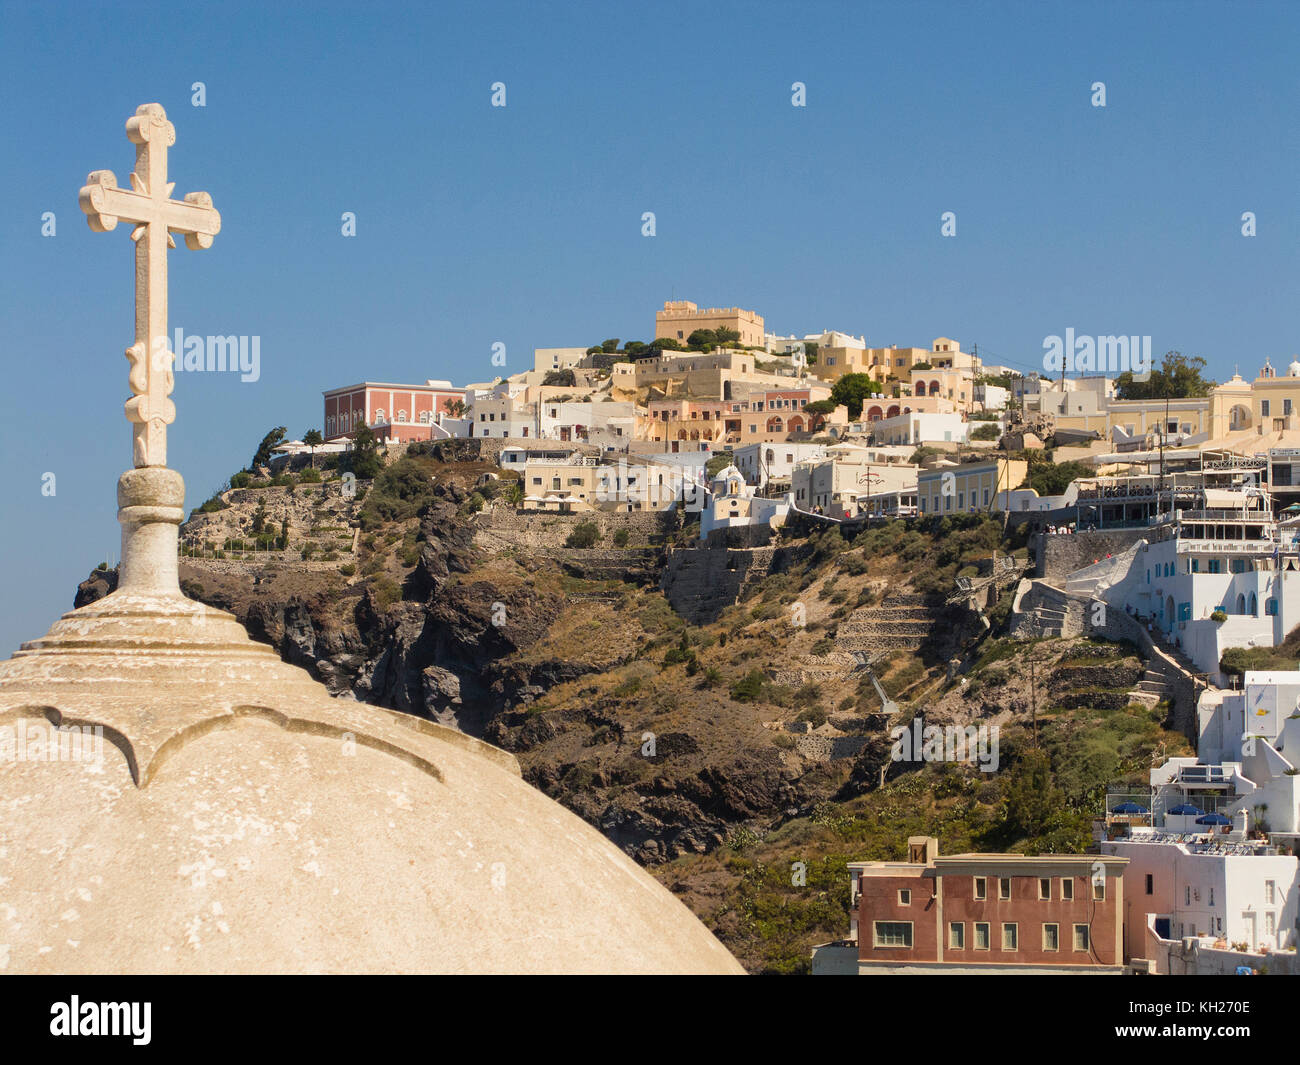 Orthodox church at the crater edge, Thira, Santorin island, Cyclades, Aegean, Greece - Stock Image